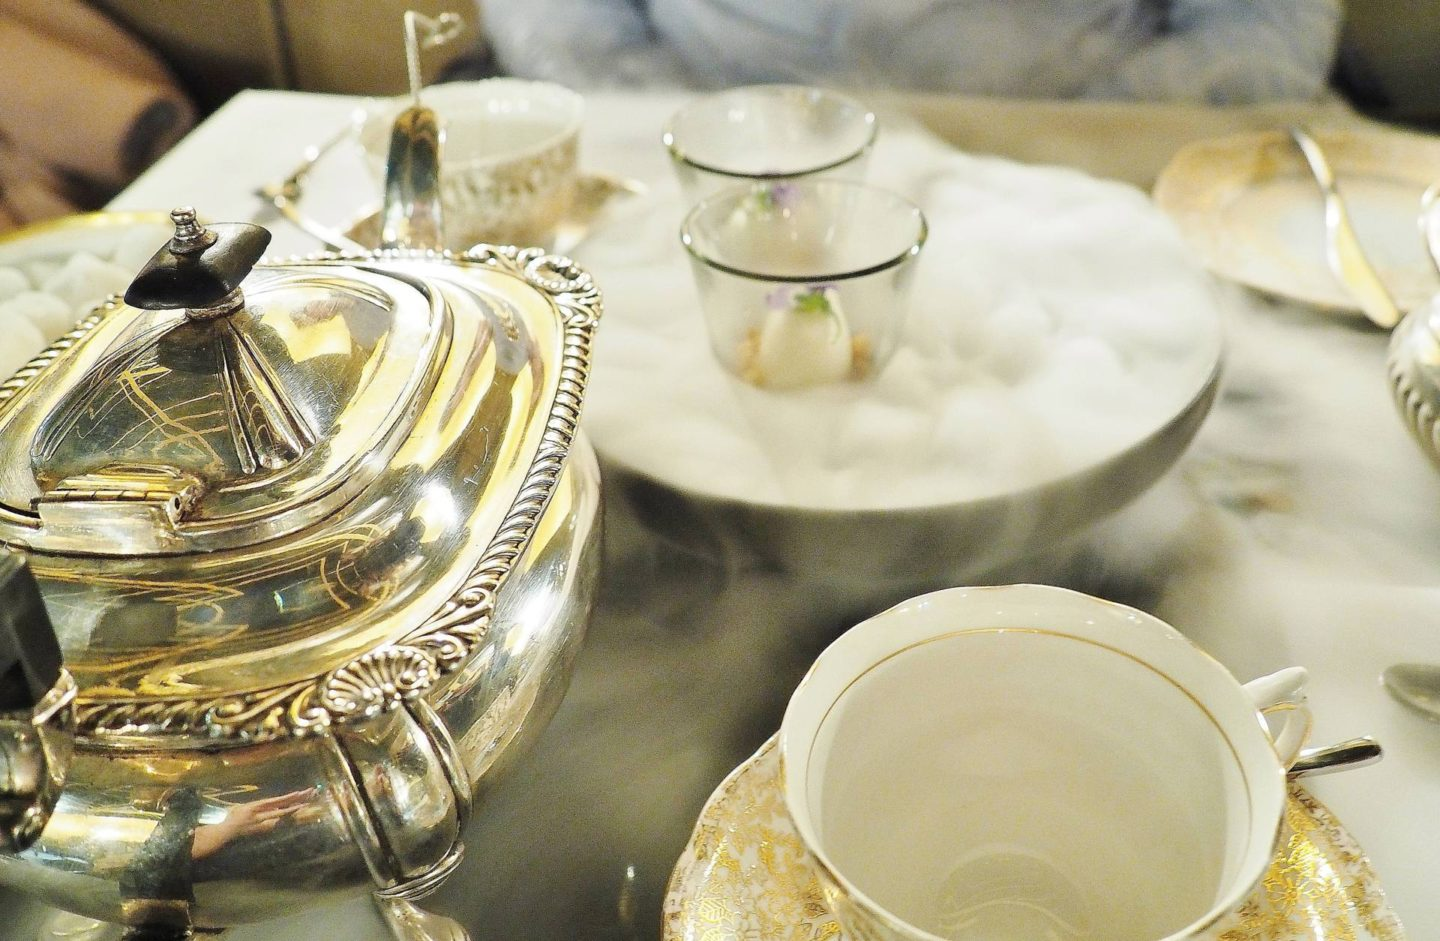 Emma Victoria Stokes Afternoon Tea Edgbaston Hotel Dry Ice